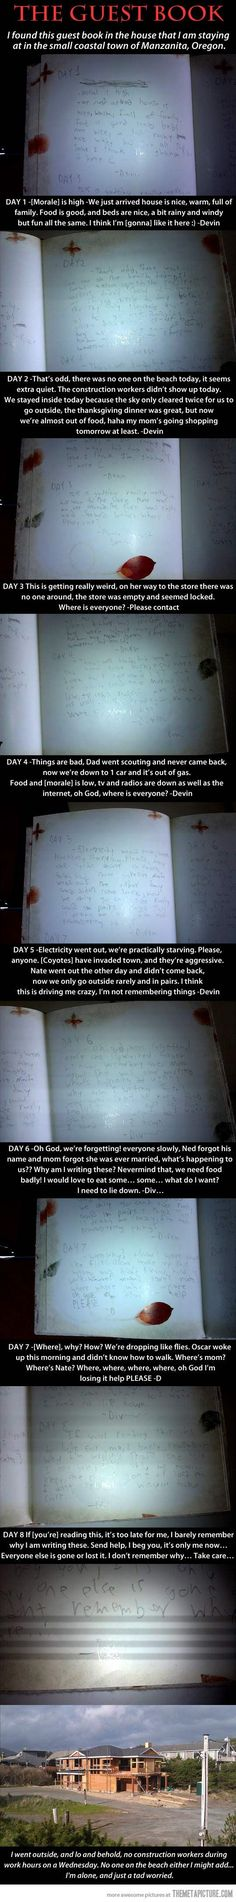 My story here is that some kid was miserable on vacation, very creative, and watches way too many horror movies!